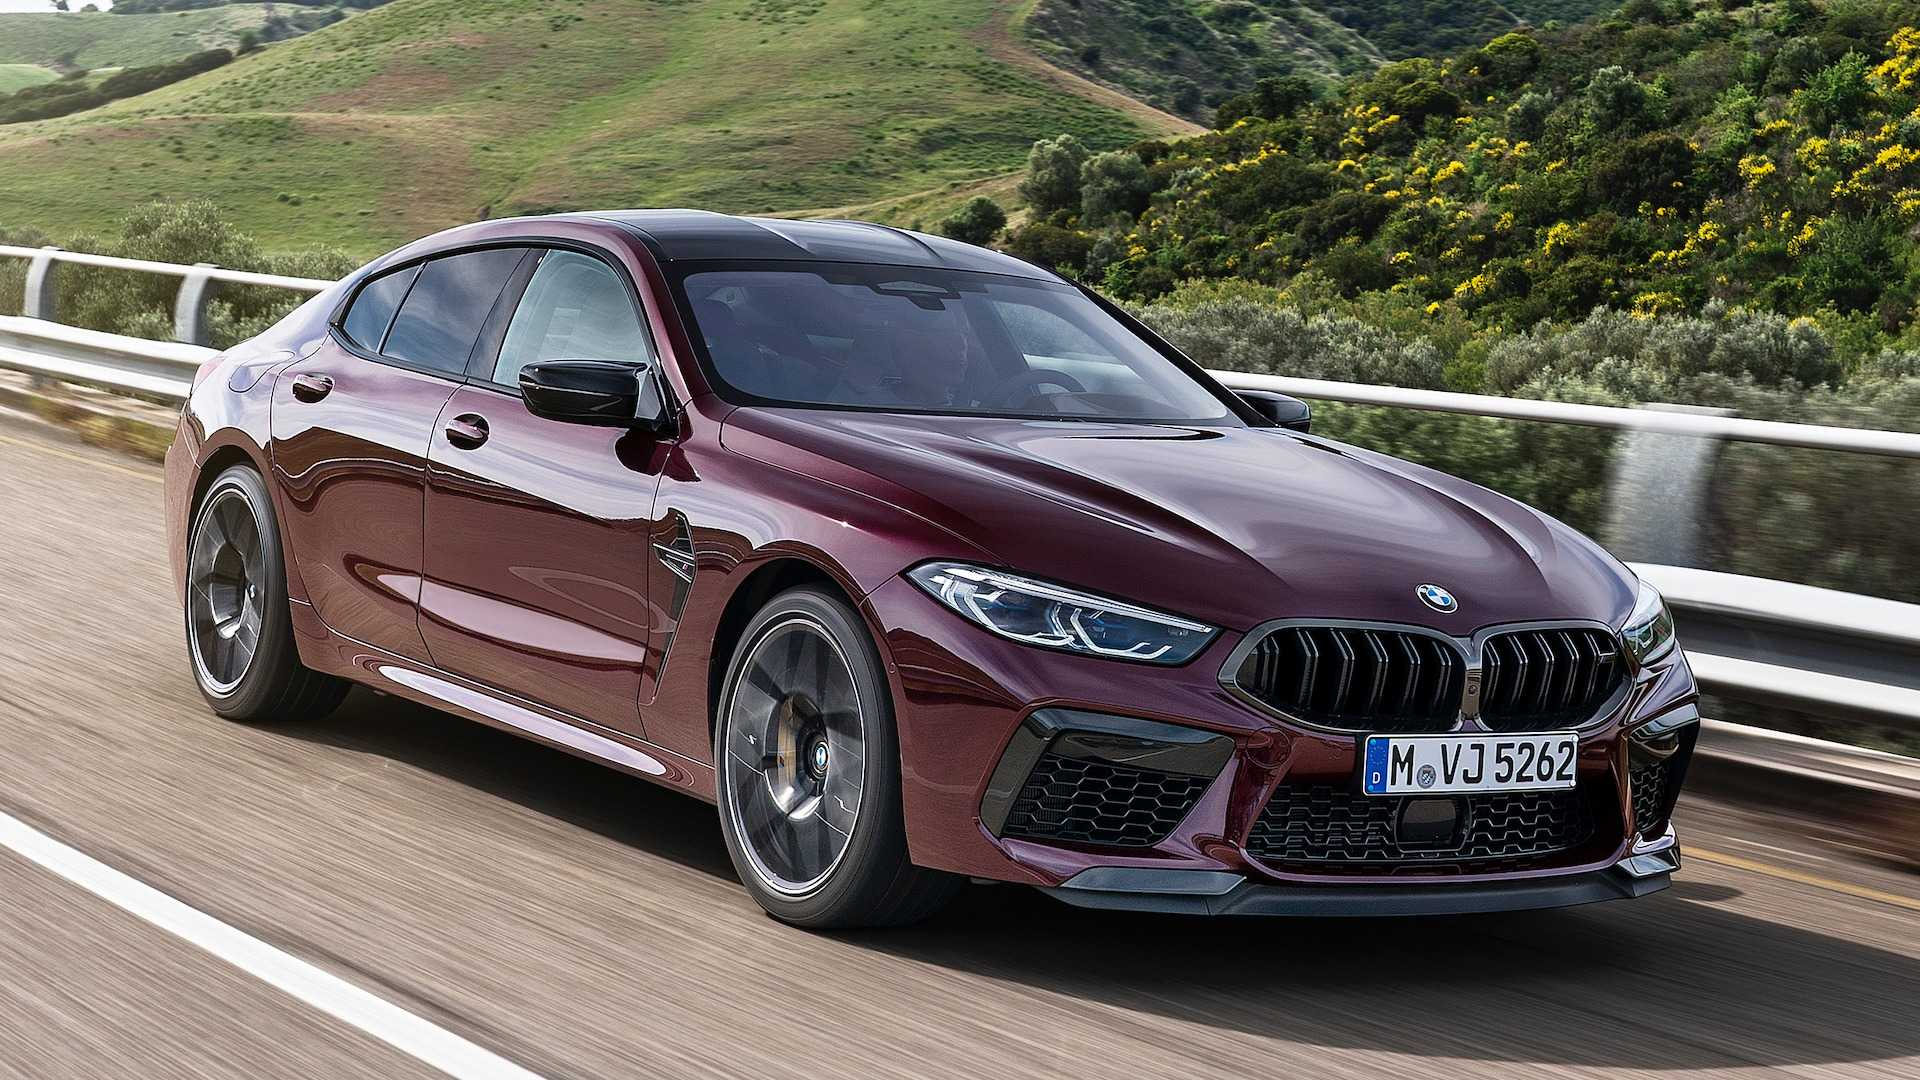 2020-bmw-m8-gran-coupe-competition-22